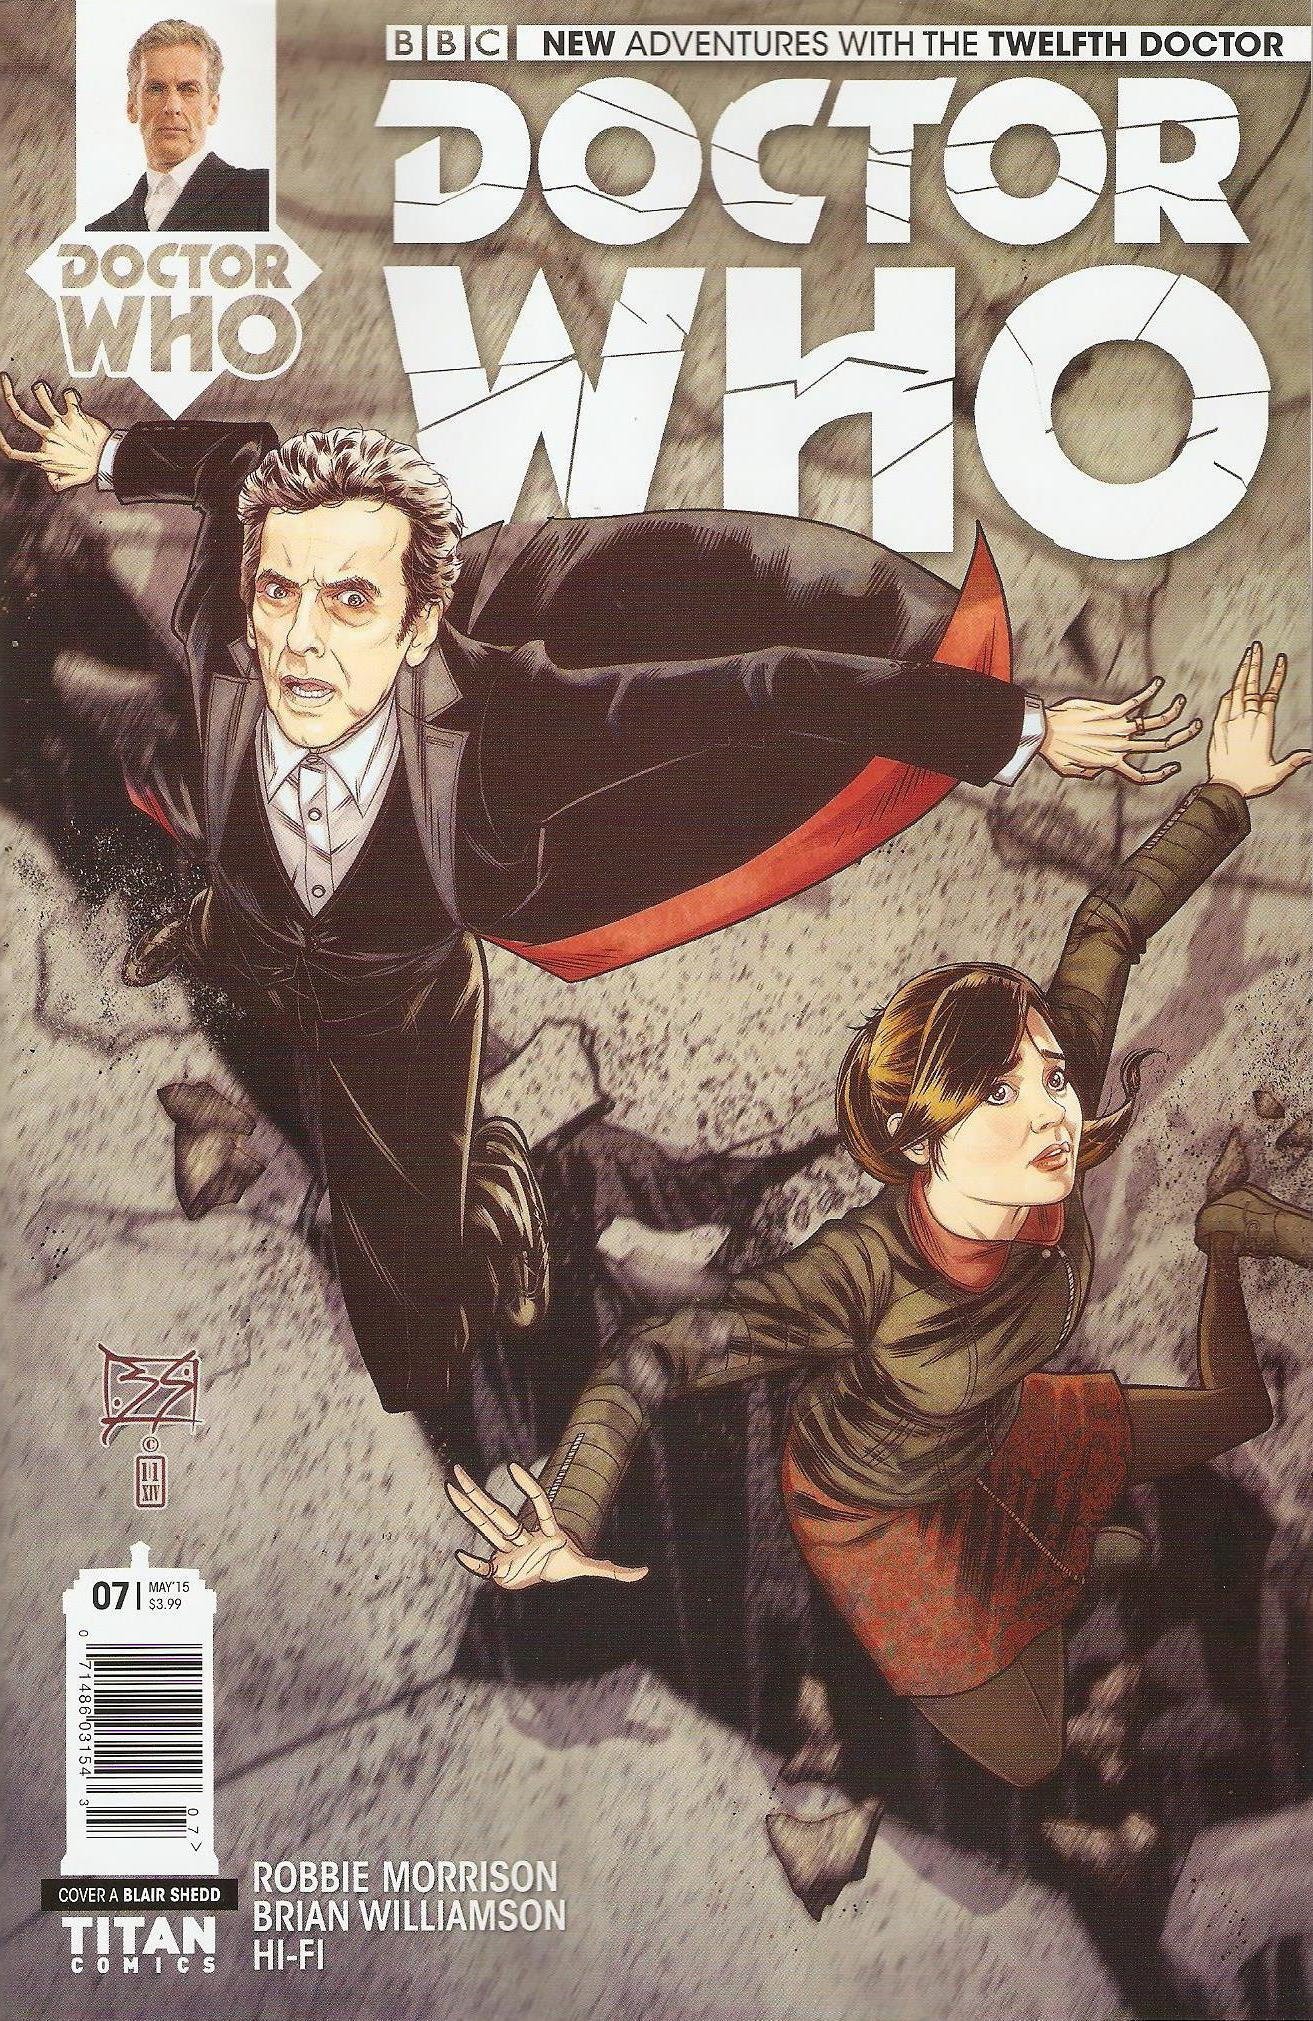 Twelfth doctor issue 7a